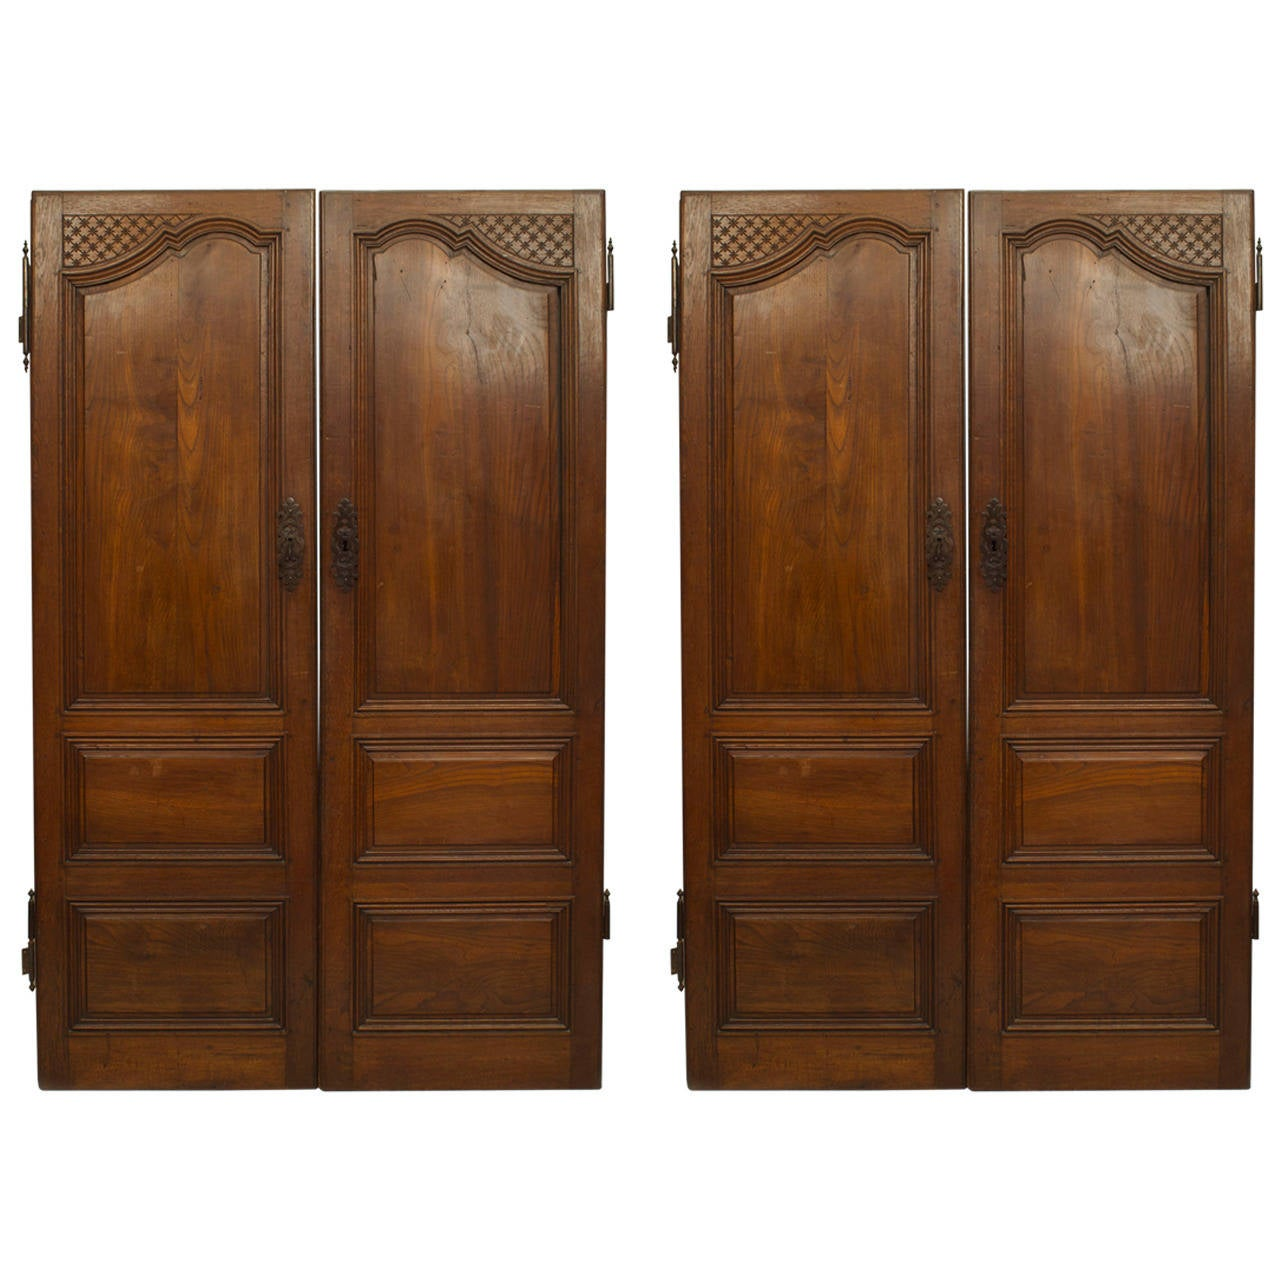 Pair of 18th Century French Provincial Walnut Doors